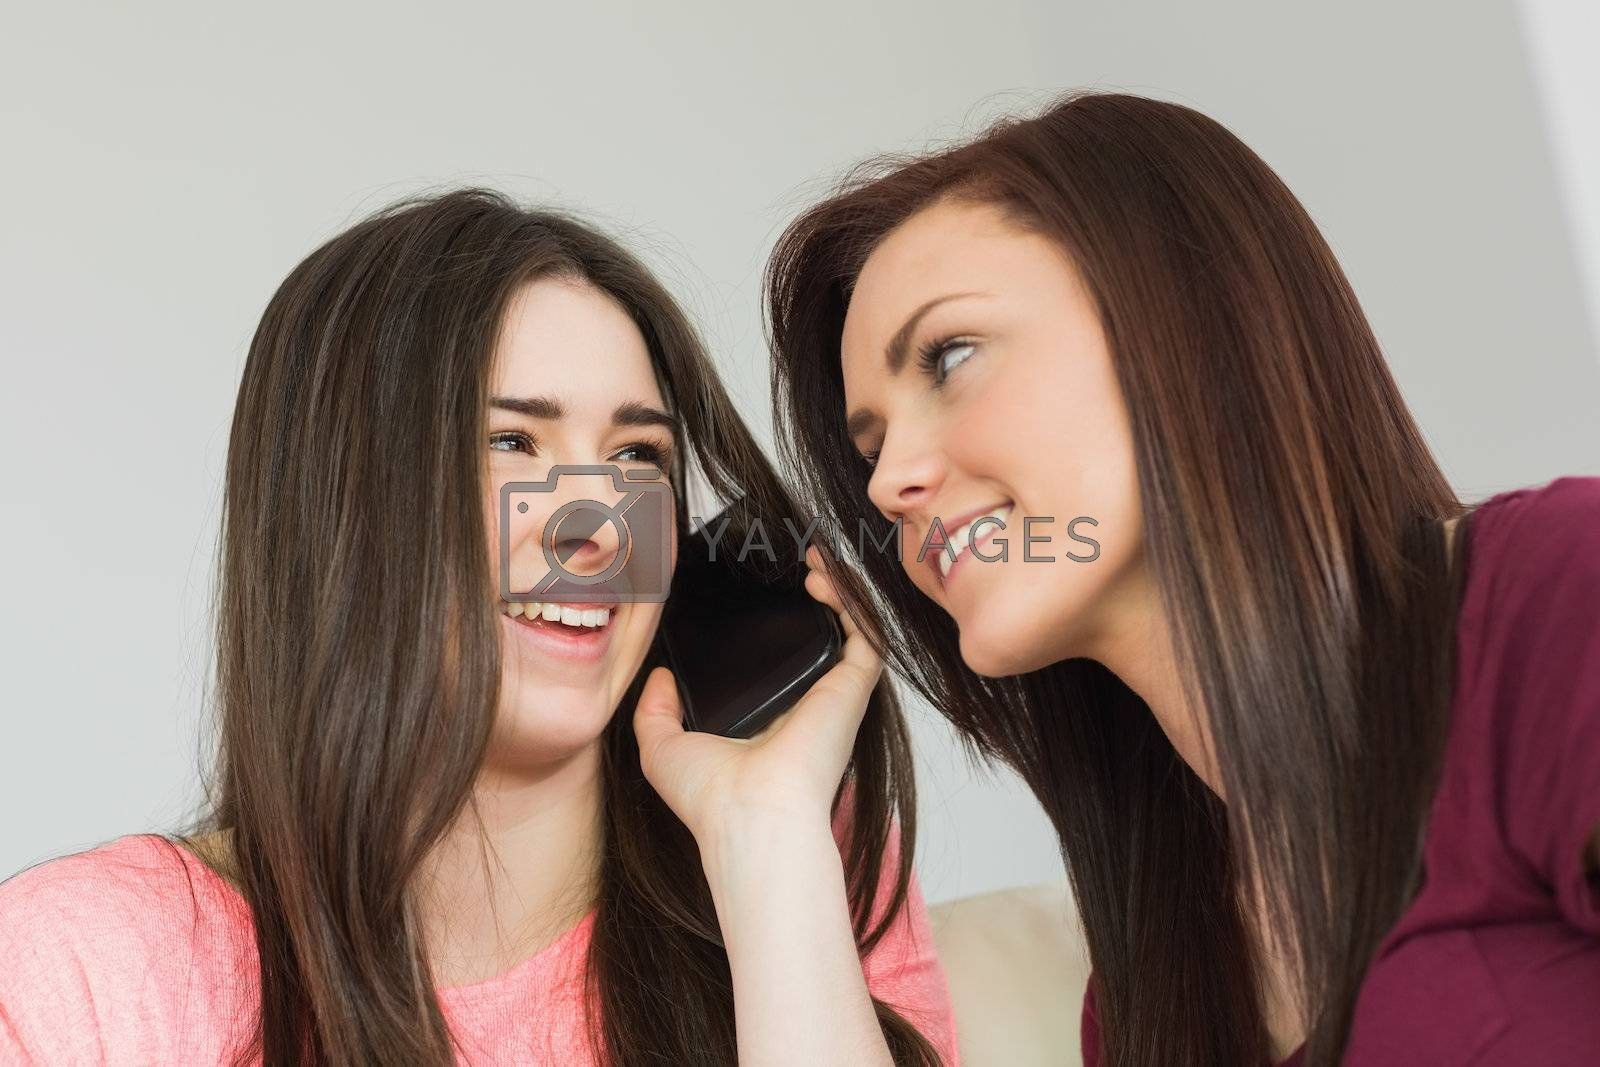 Two cheerful girls calling someone with a mobile phone by Wavebreakmedia